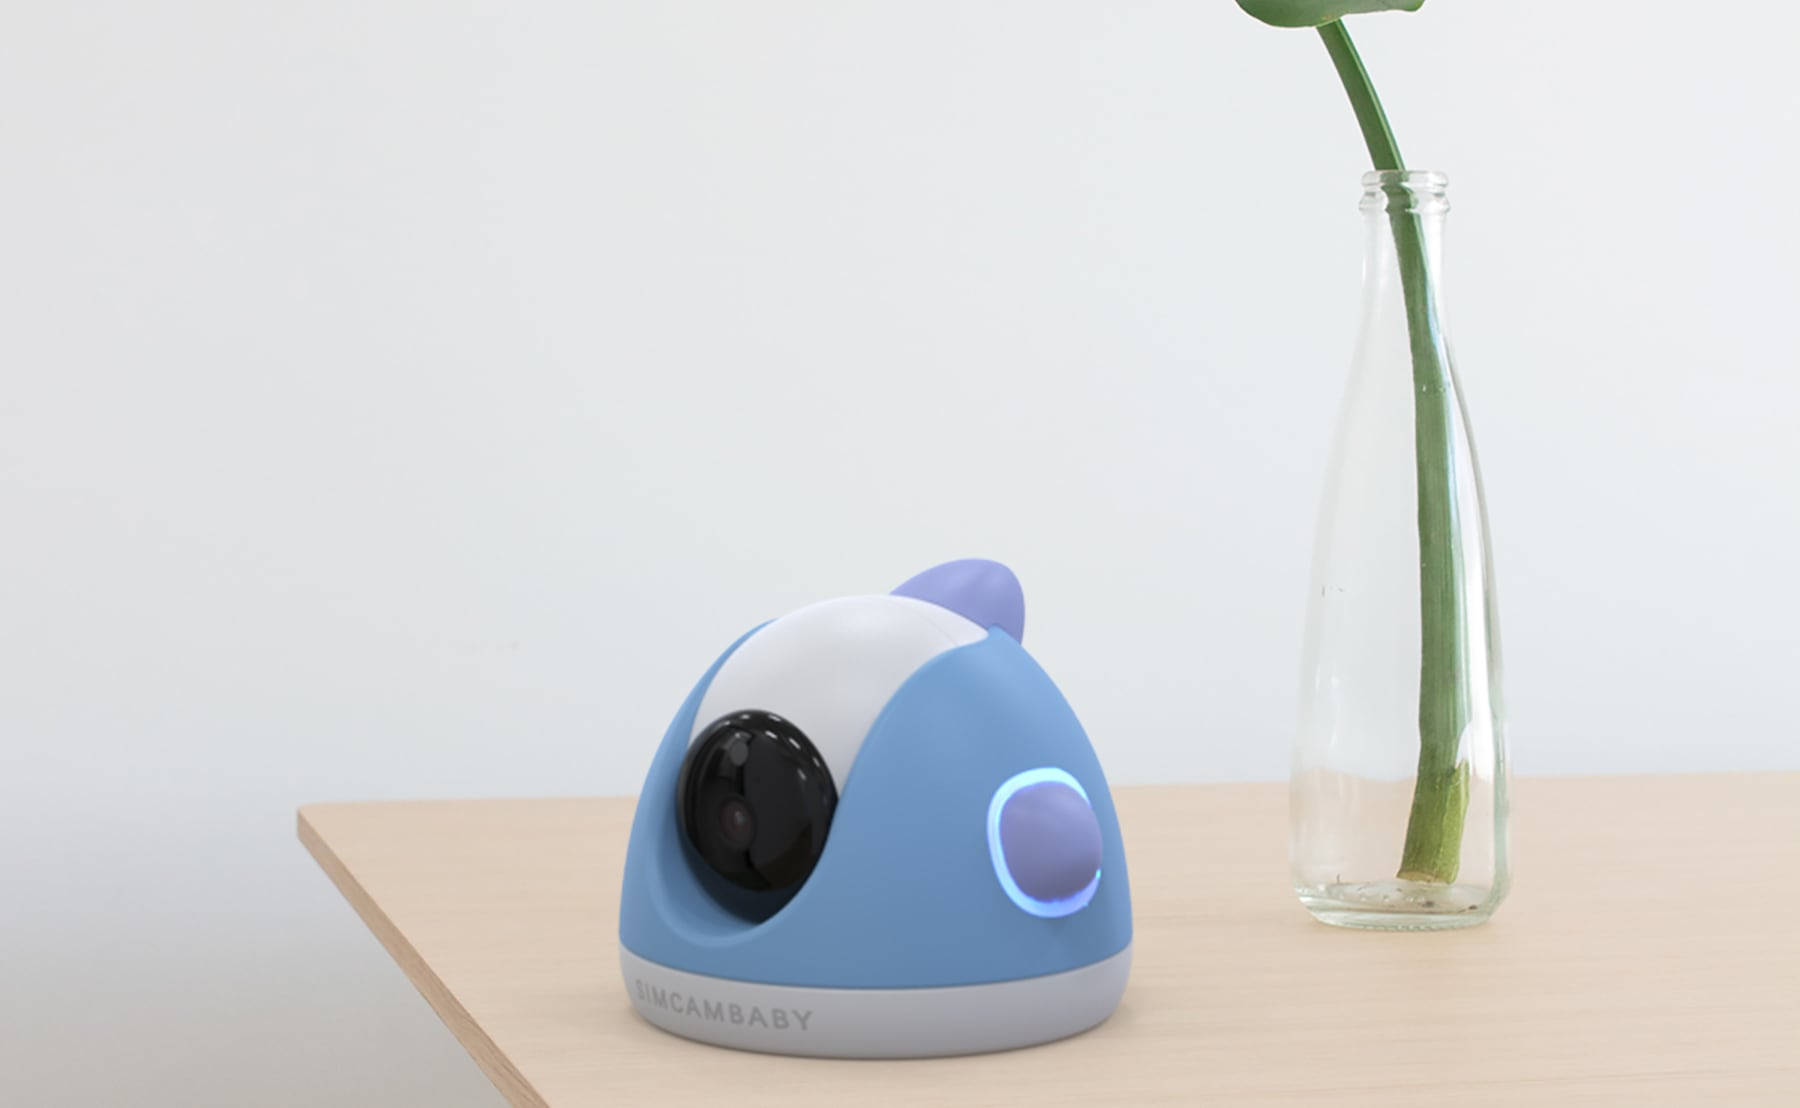 SimCam Baby Smart Detecting Baby Monitor notifies you when your baby's face is covered